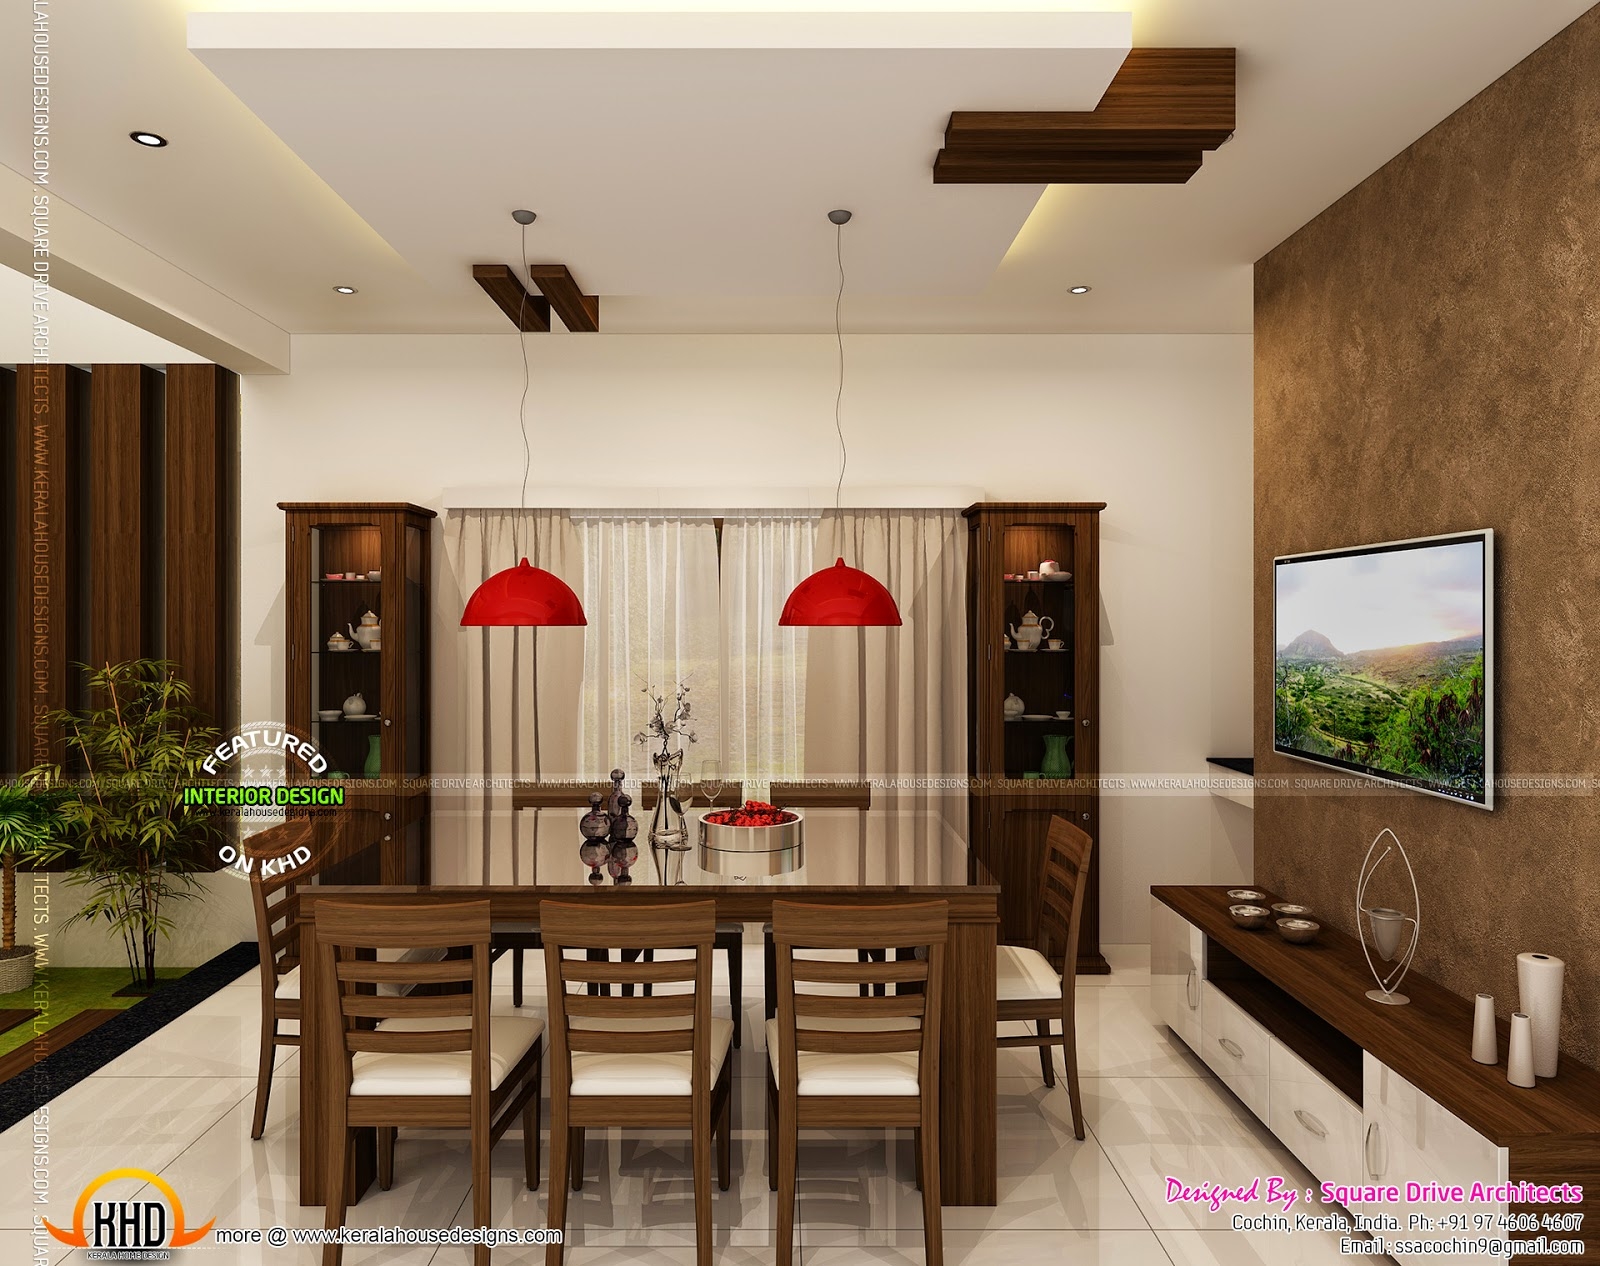 Home interiors designs kerala home design and floor plans for House interior design dining room